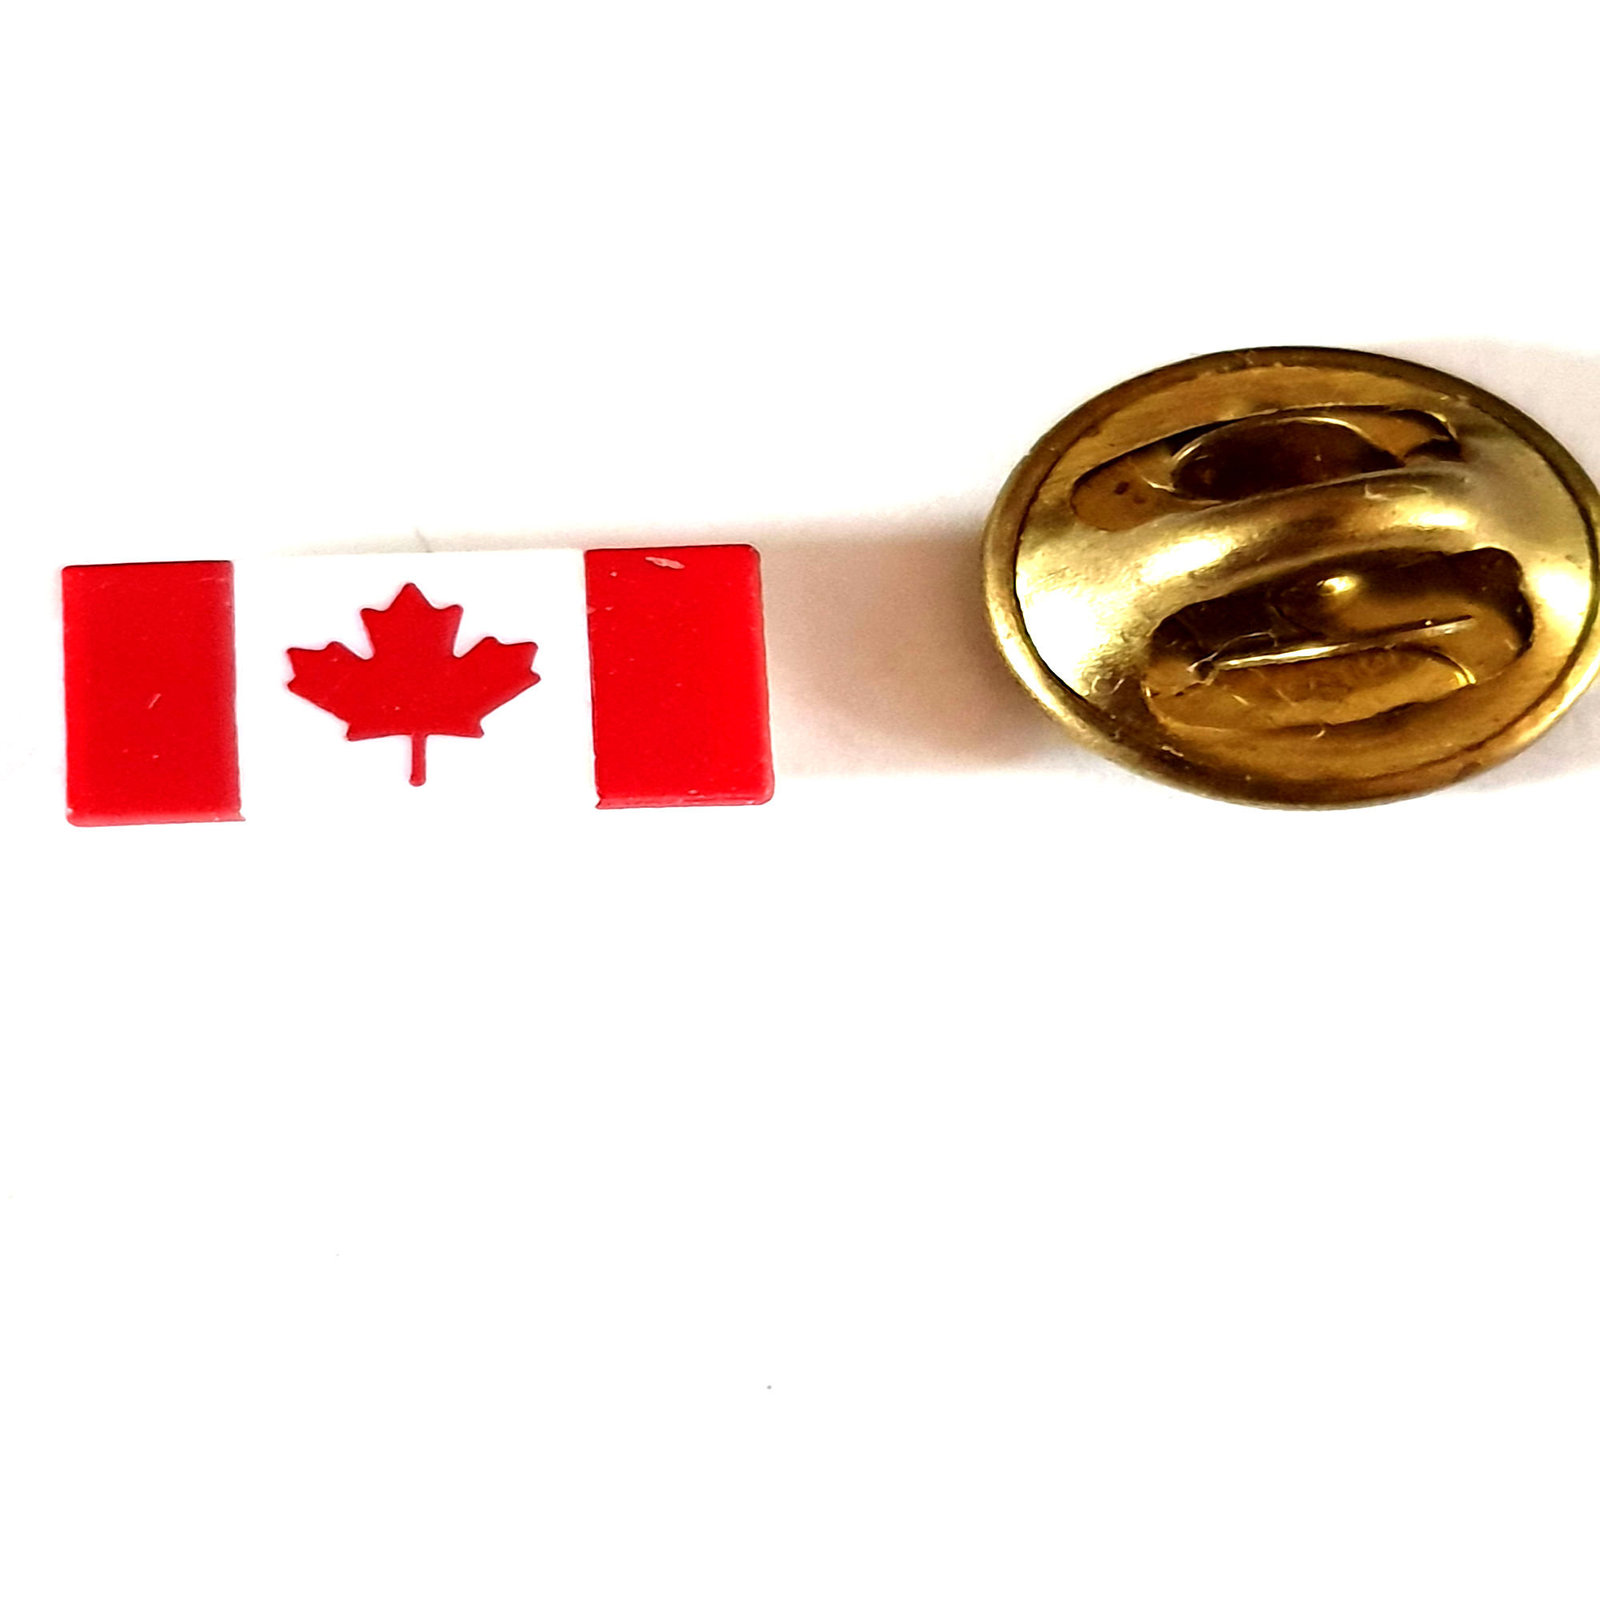 small Canada, Canadian Flag  lapel pin  handmade in uk from uk made parts, boxed